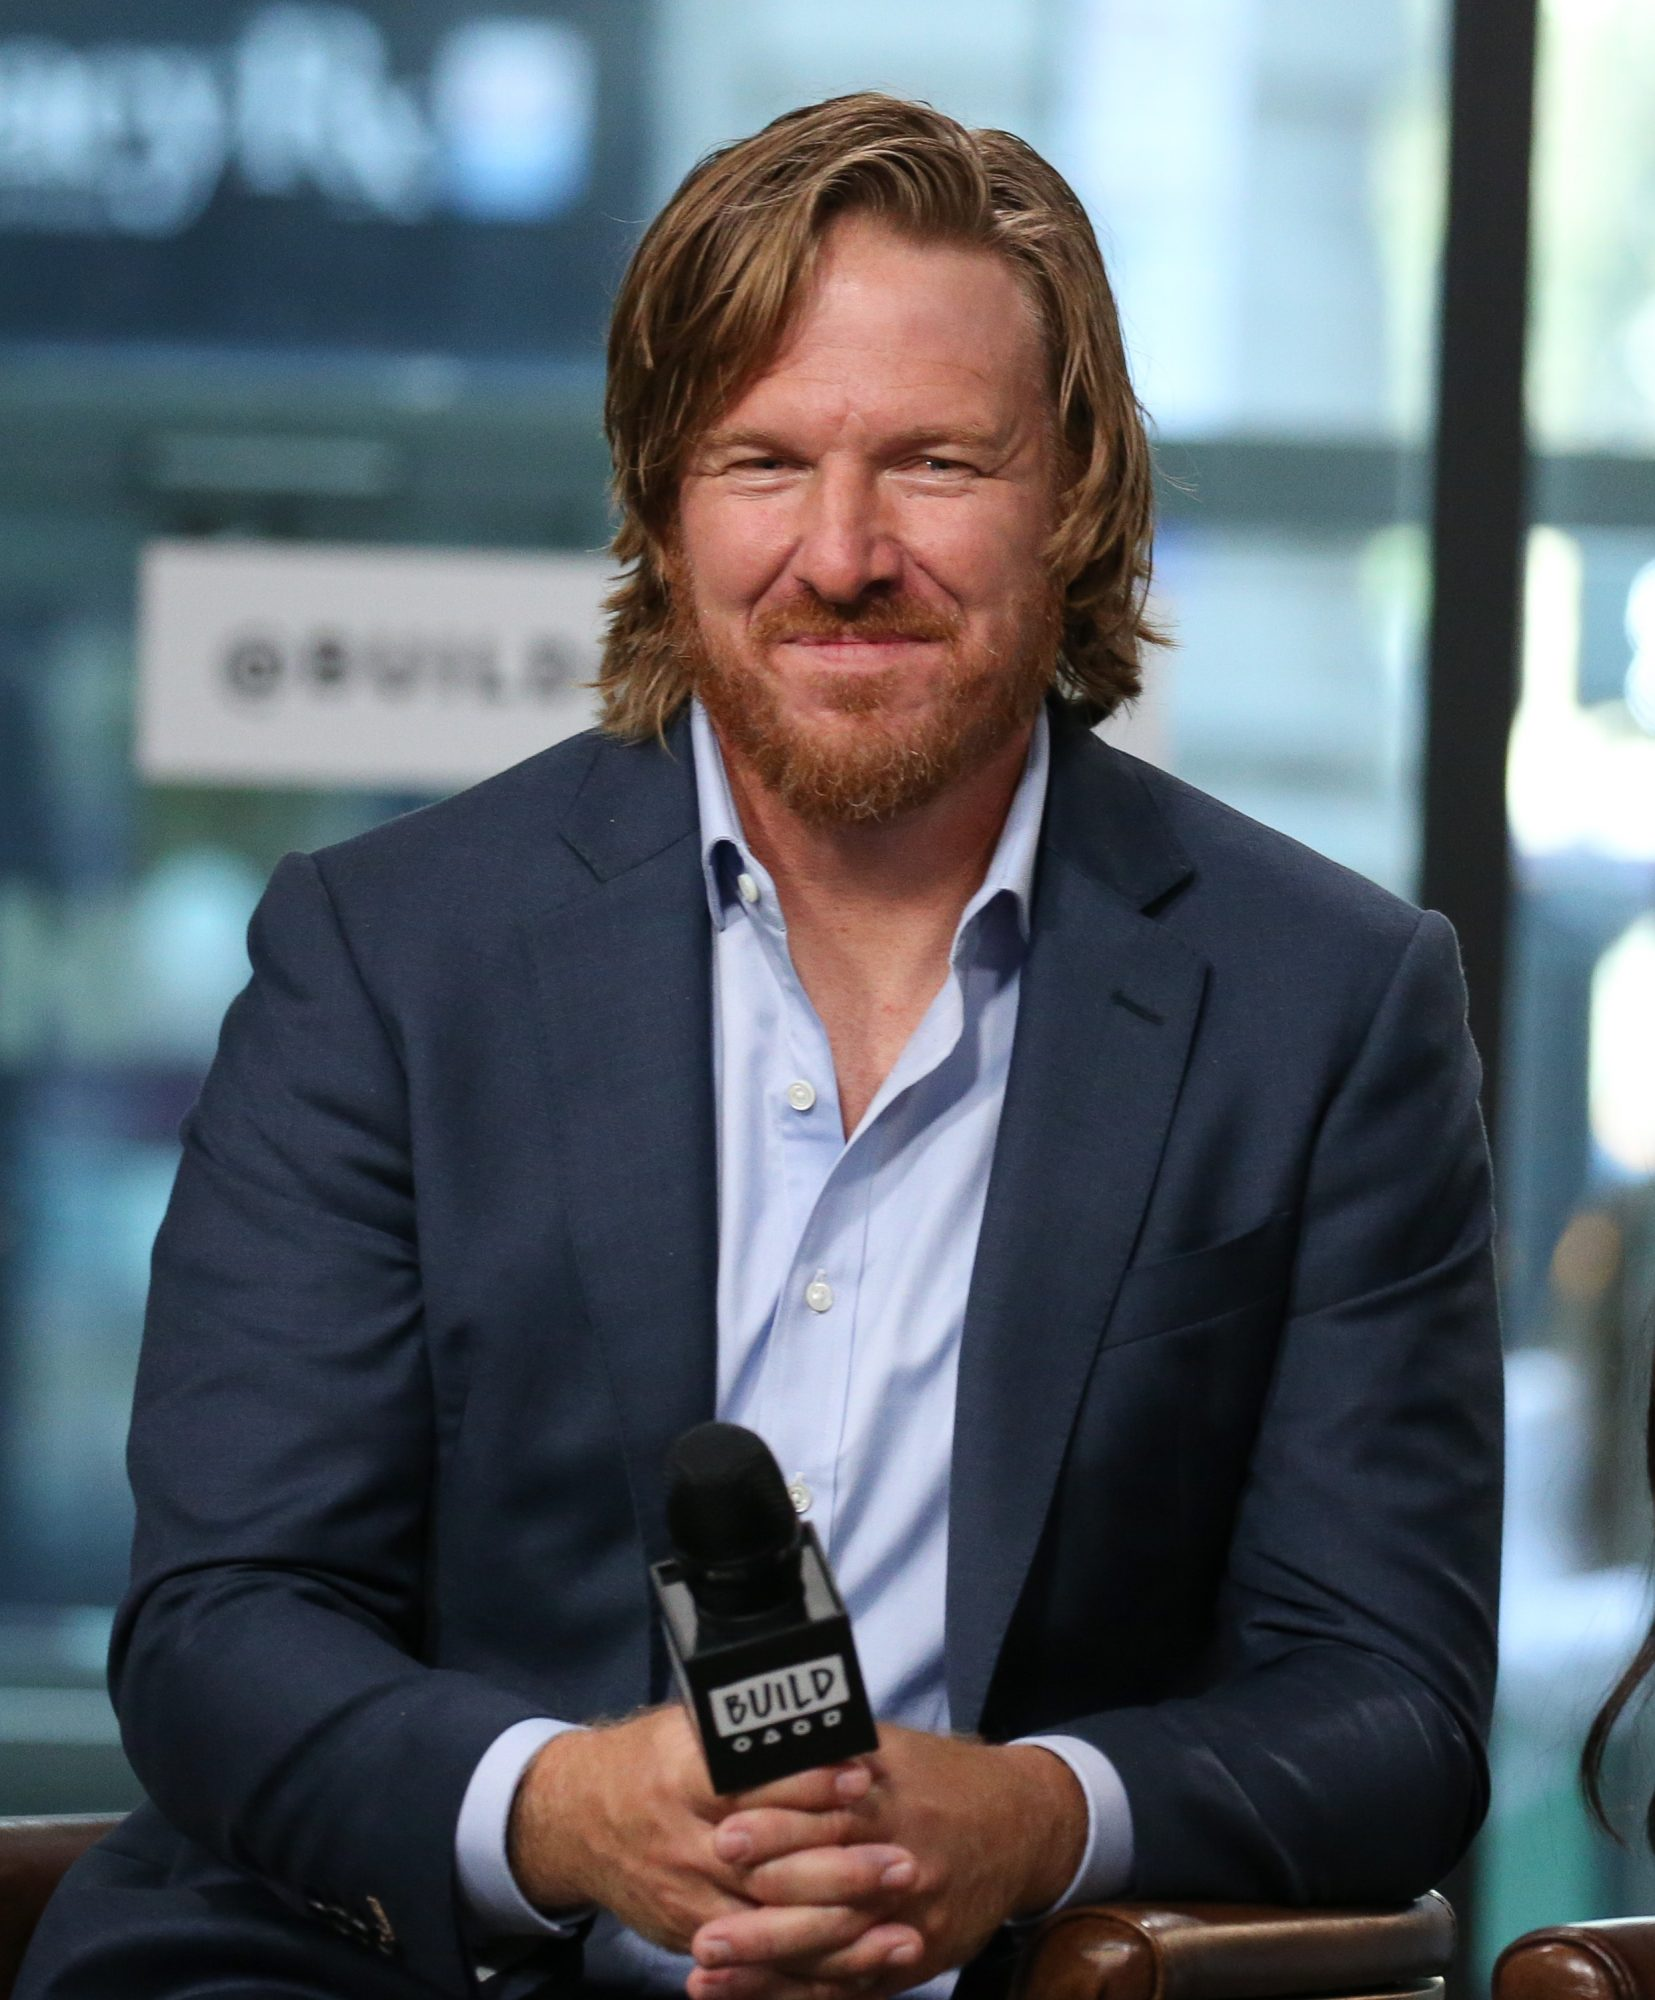 Chip Gaines Sitting Down on TV